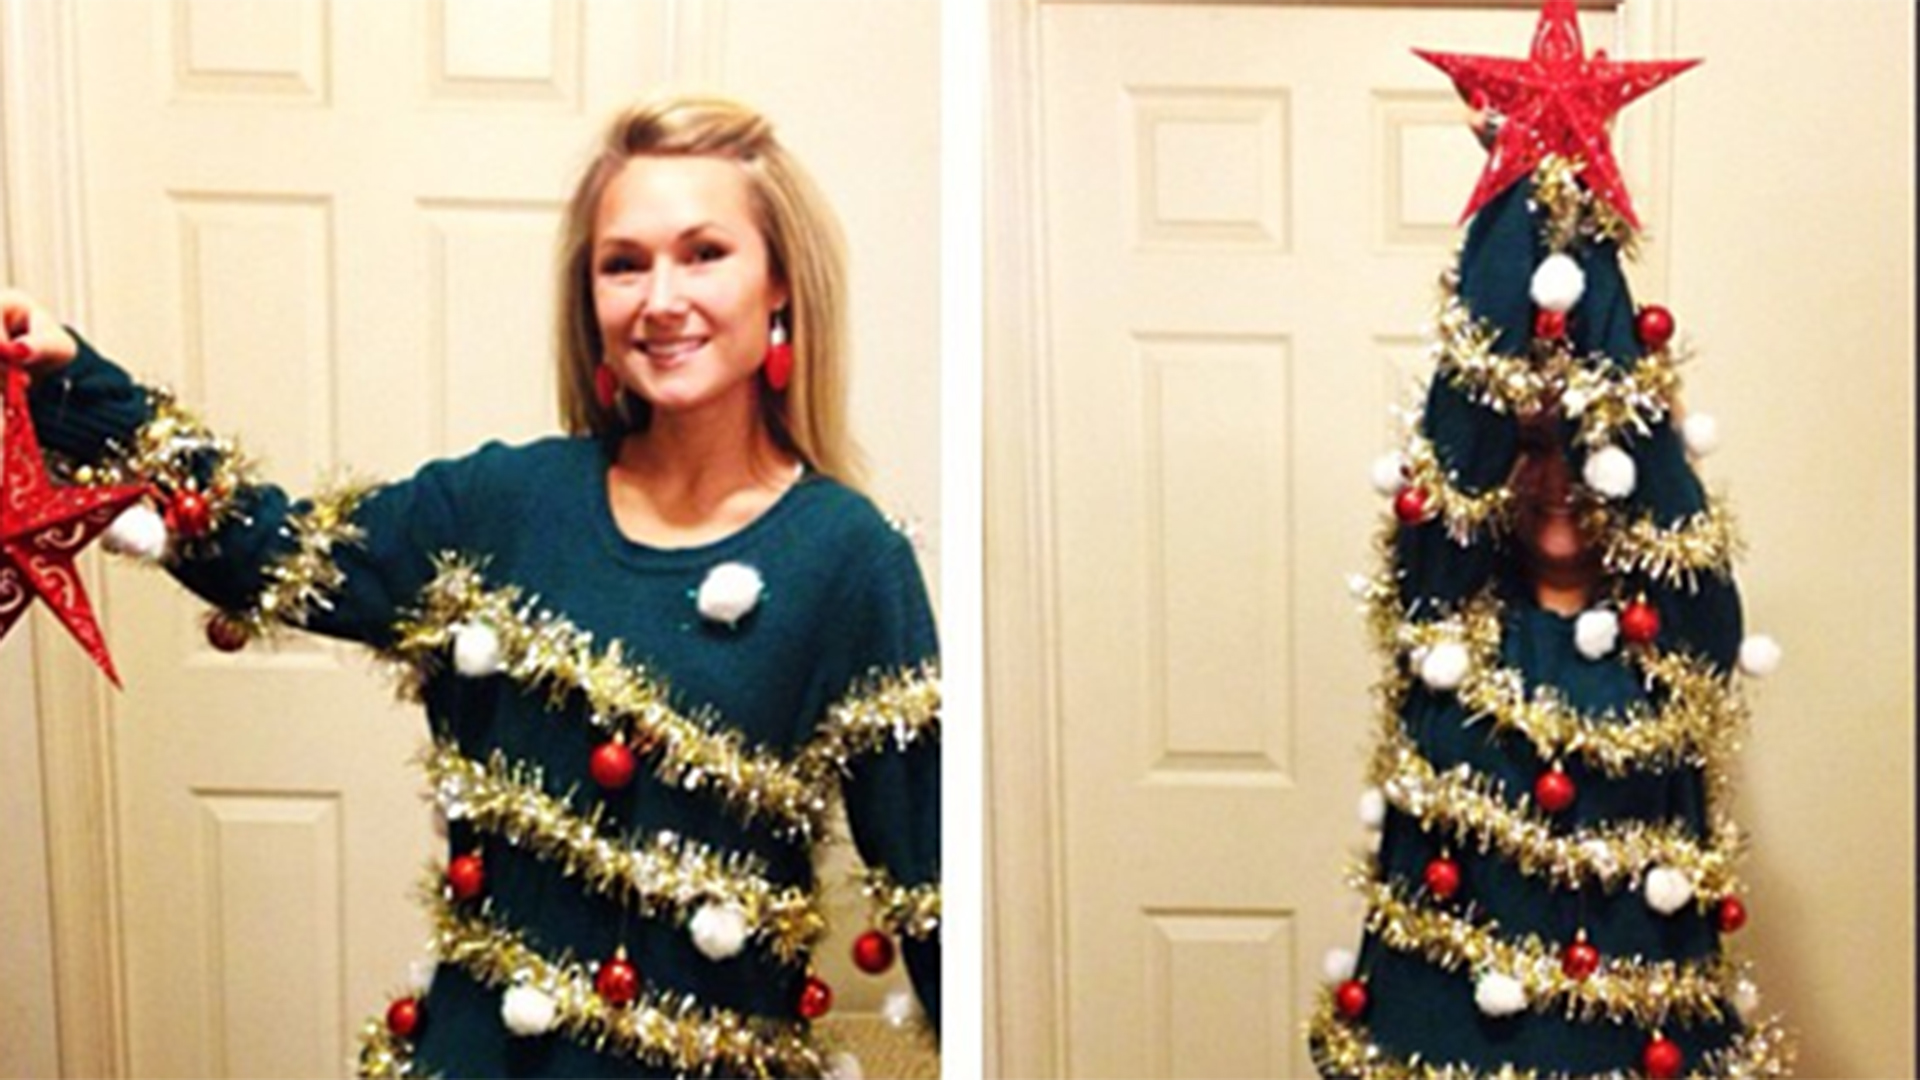 7 diy ugly christmas sweaters from pinterest - Homemade Ugly Christmas Sweater